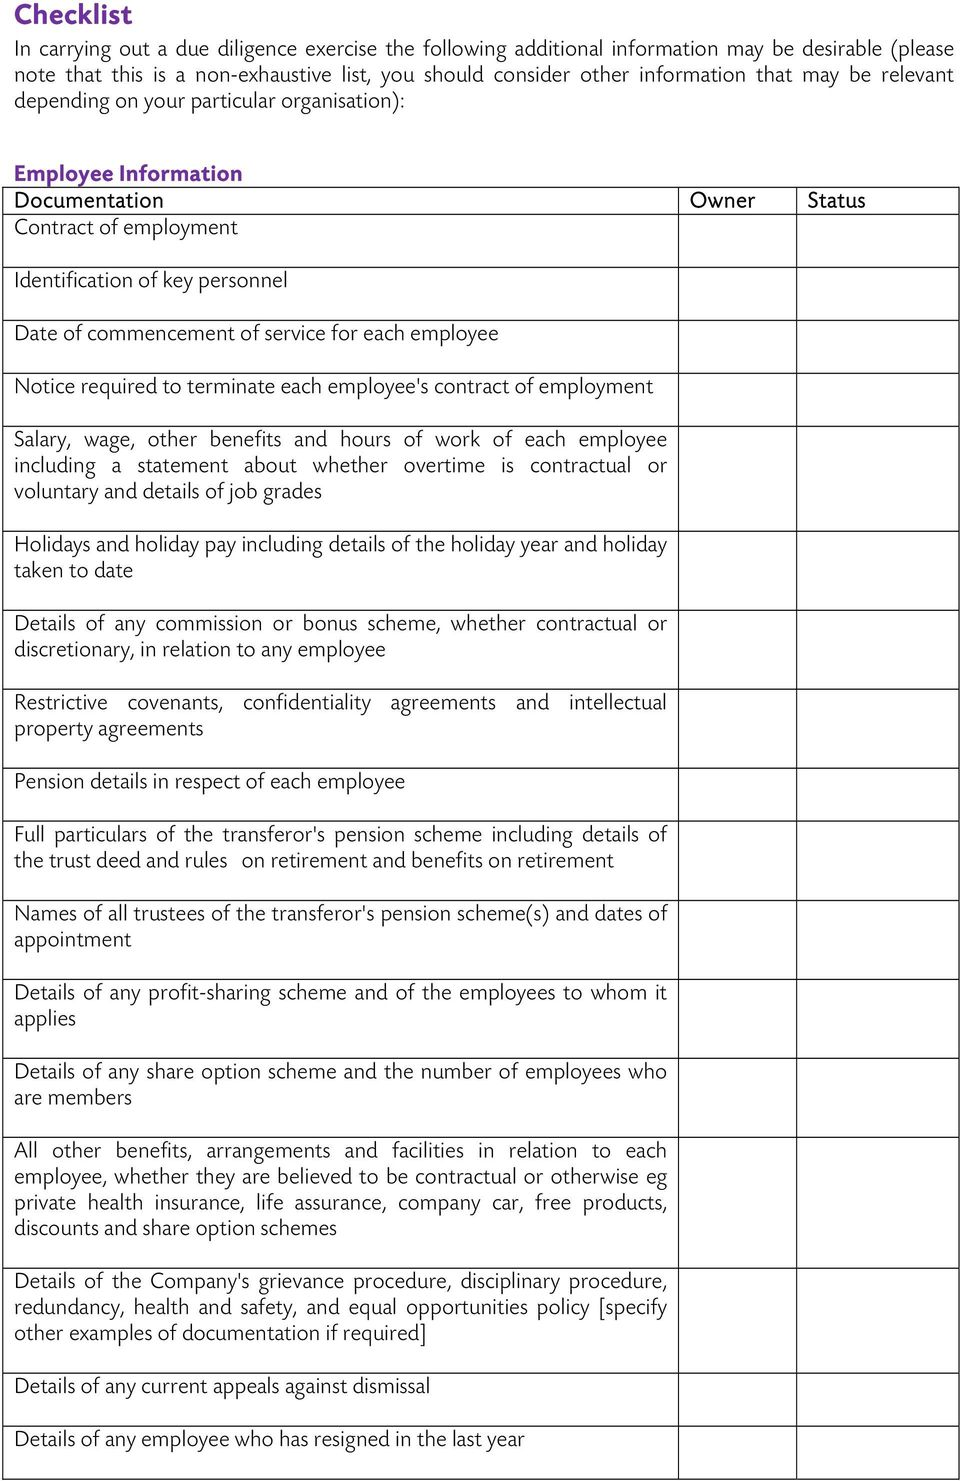 required to terminate each employee's contract of employment Salary, wage, other benefits and hours of work of each employee including a statement about whether overtime is contractual or voluntary